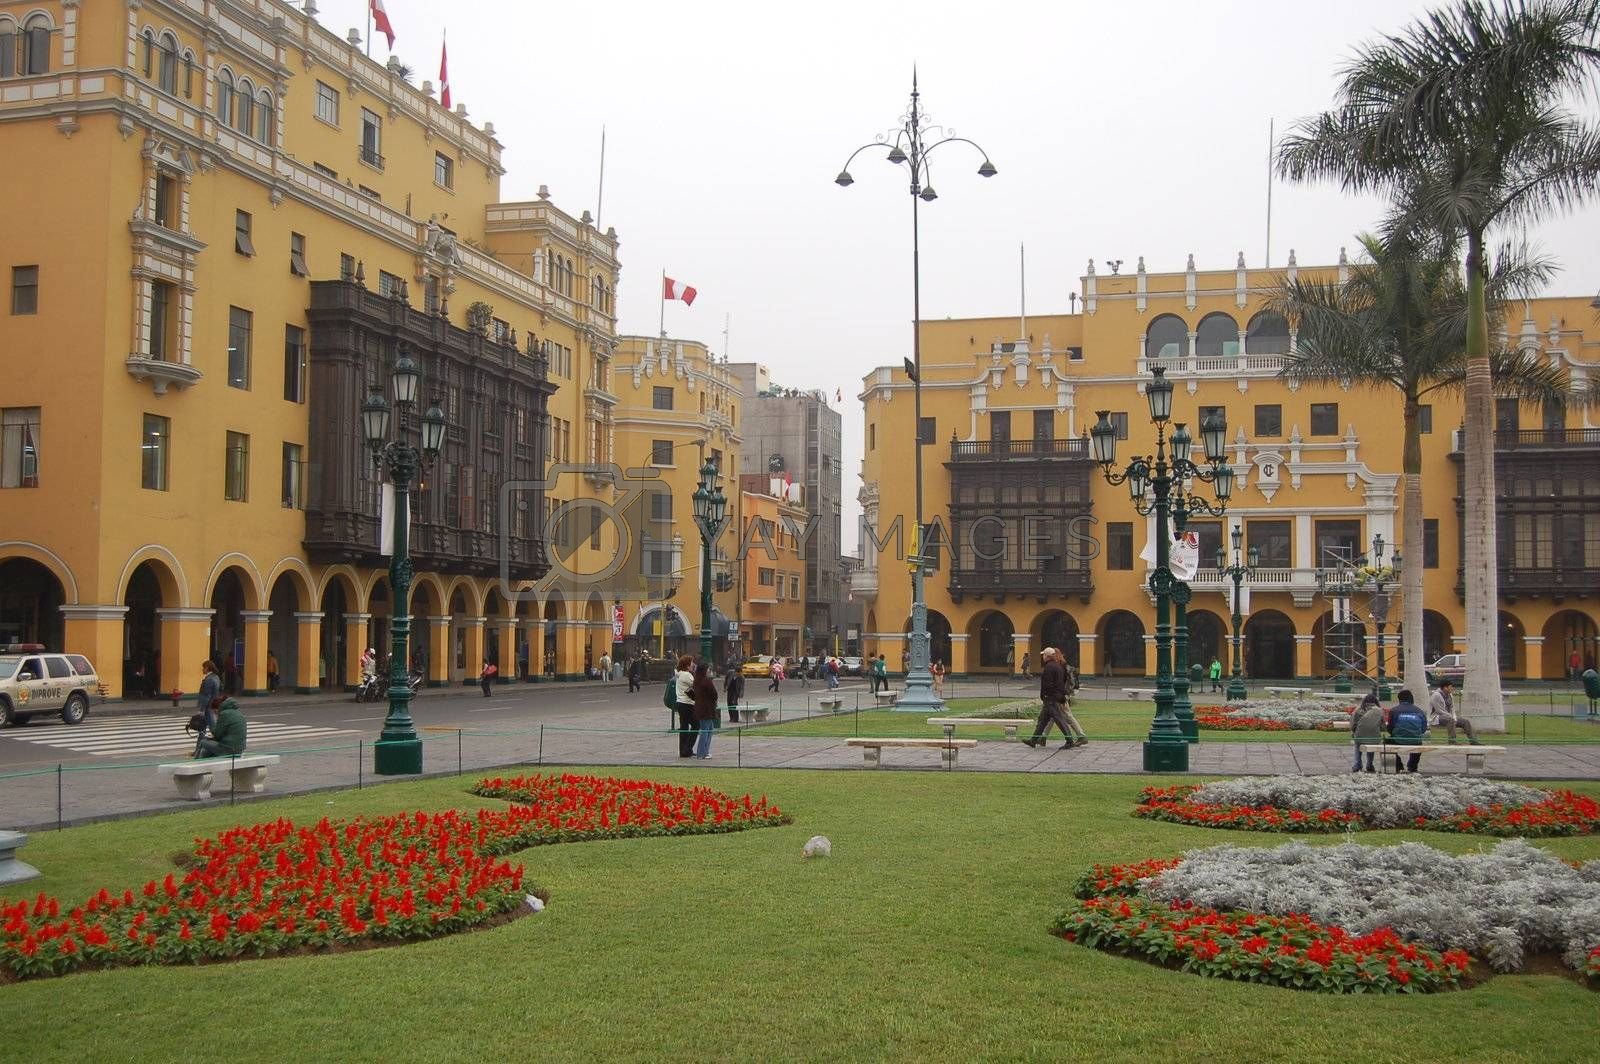 Beautifully renovated Plaza de Armas in Lima, Peru